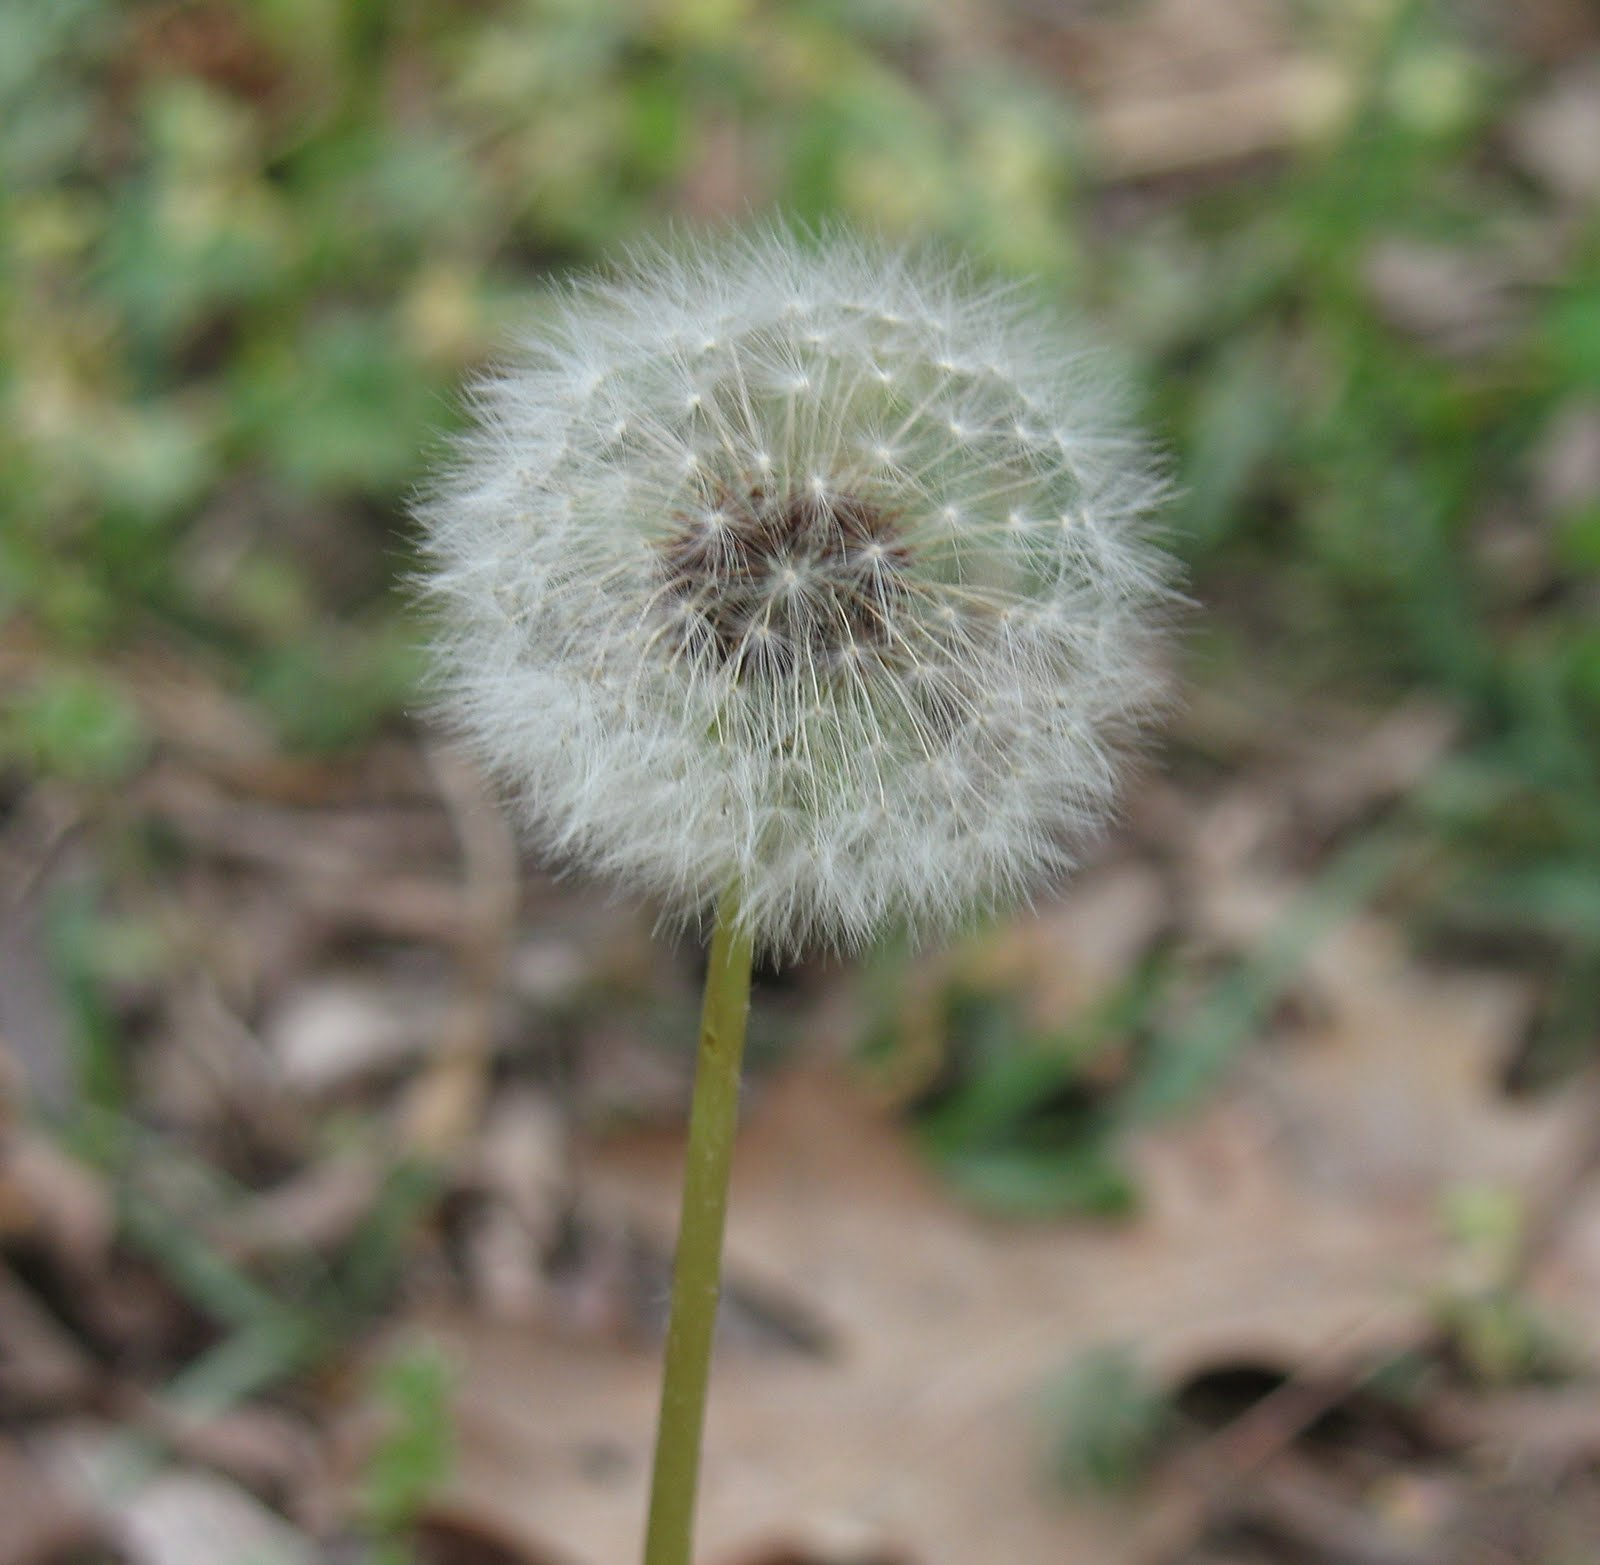 Edible wild plants dandelion greens sensible survival in older plants this flower turns into a white puff ball that kids love to pick and blow on so that the down flies away into the air mightylinksfo